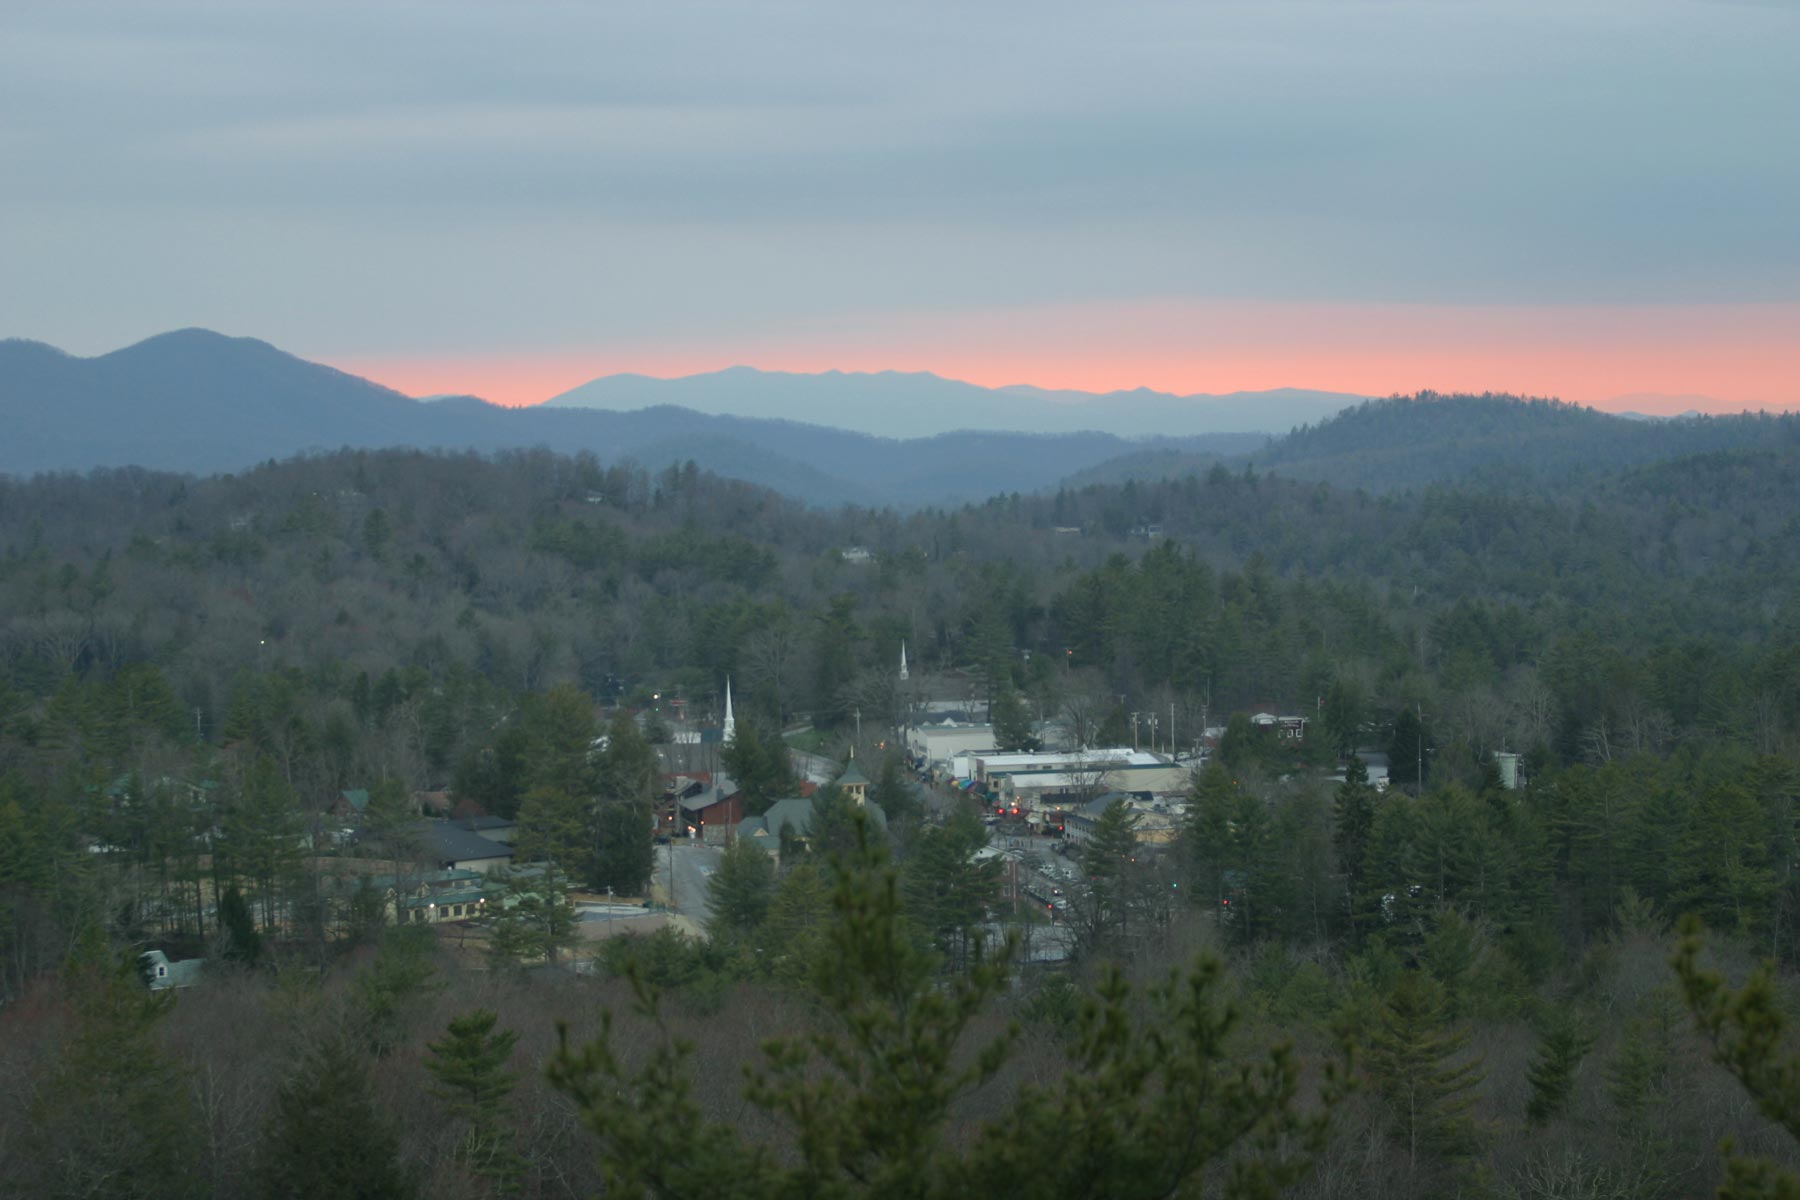 Sun sets over the green mountains of Highlands, NC